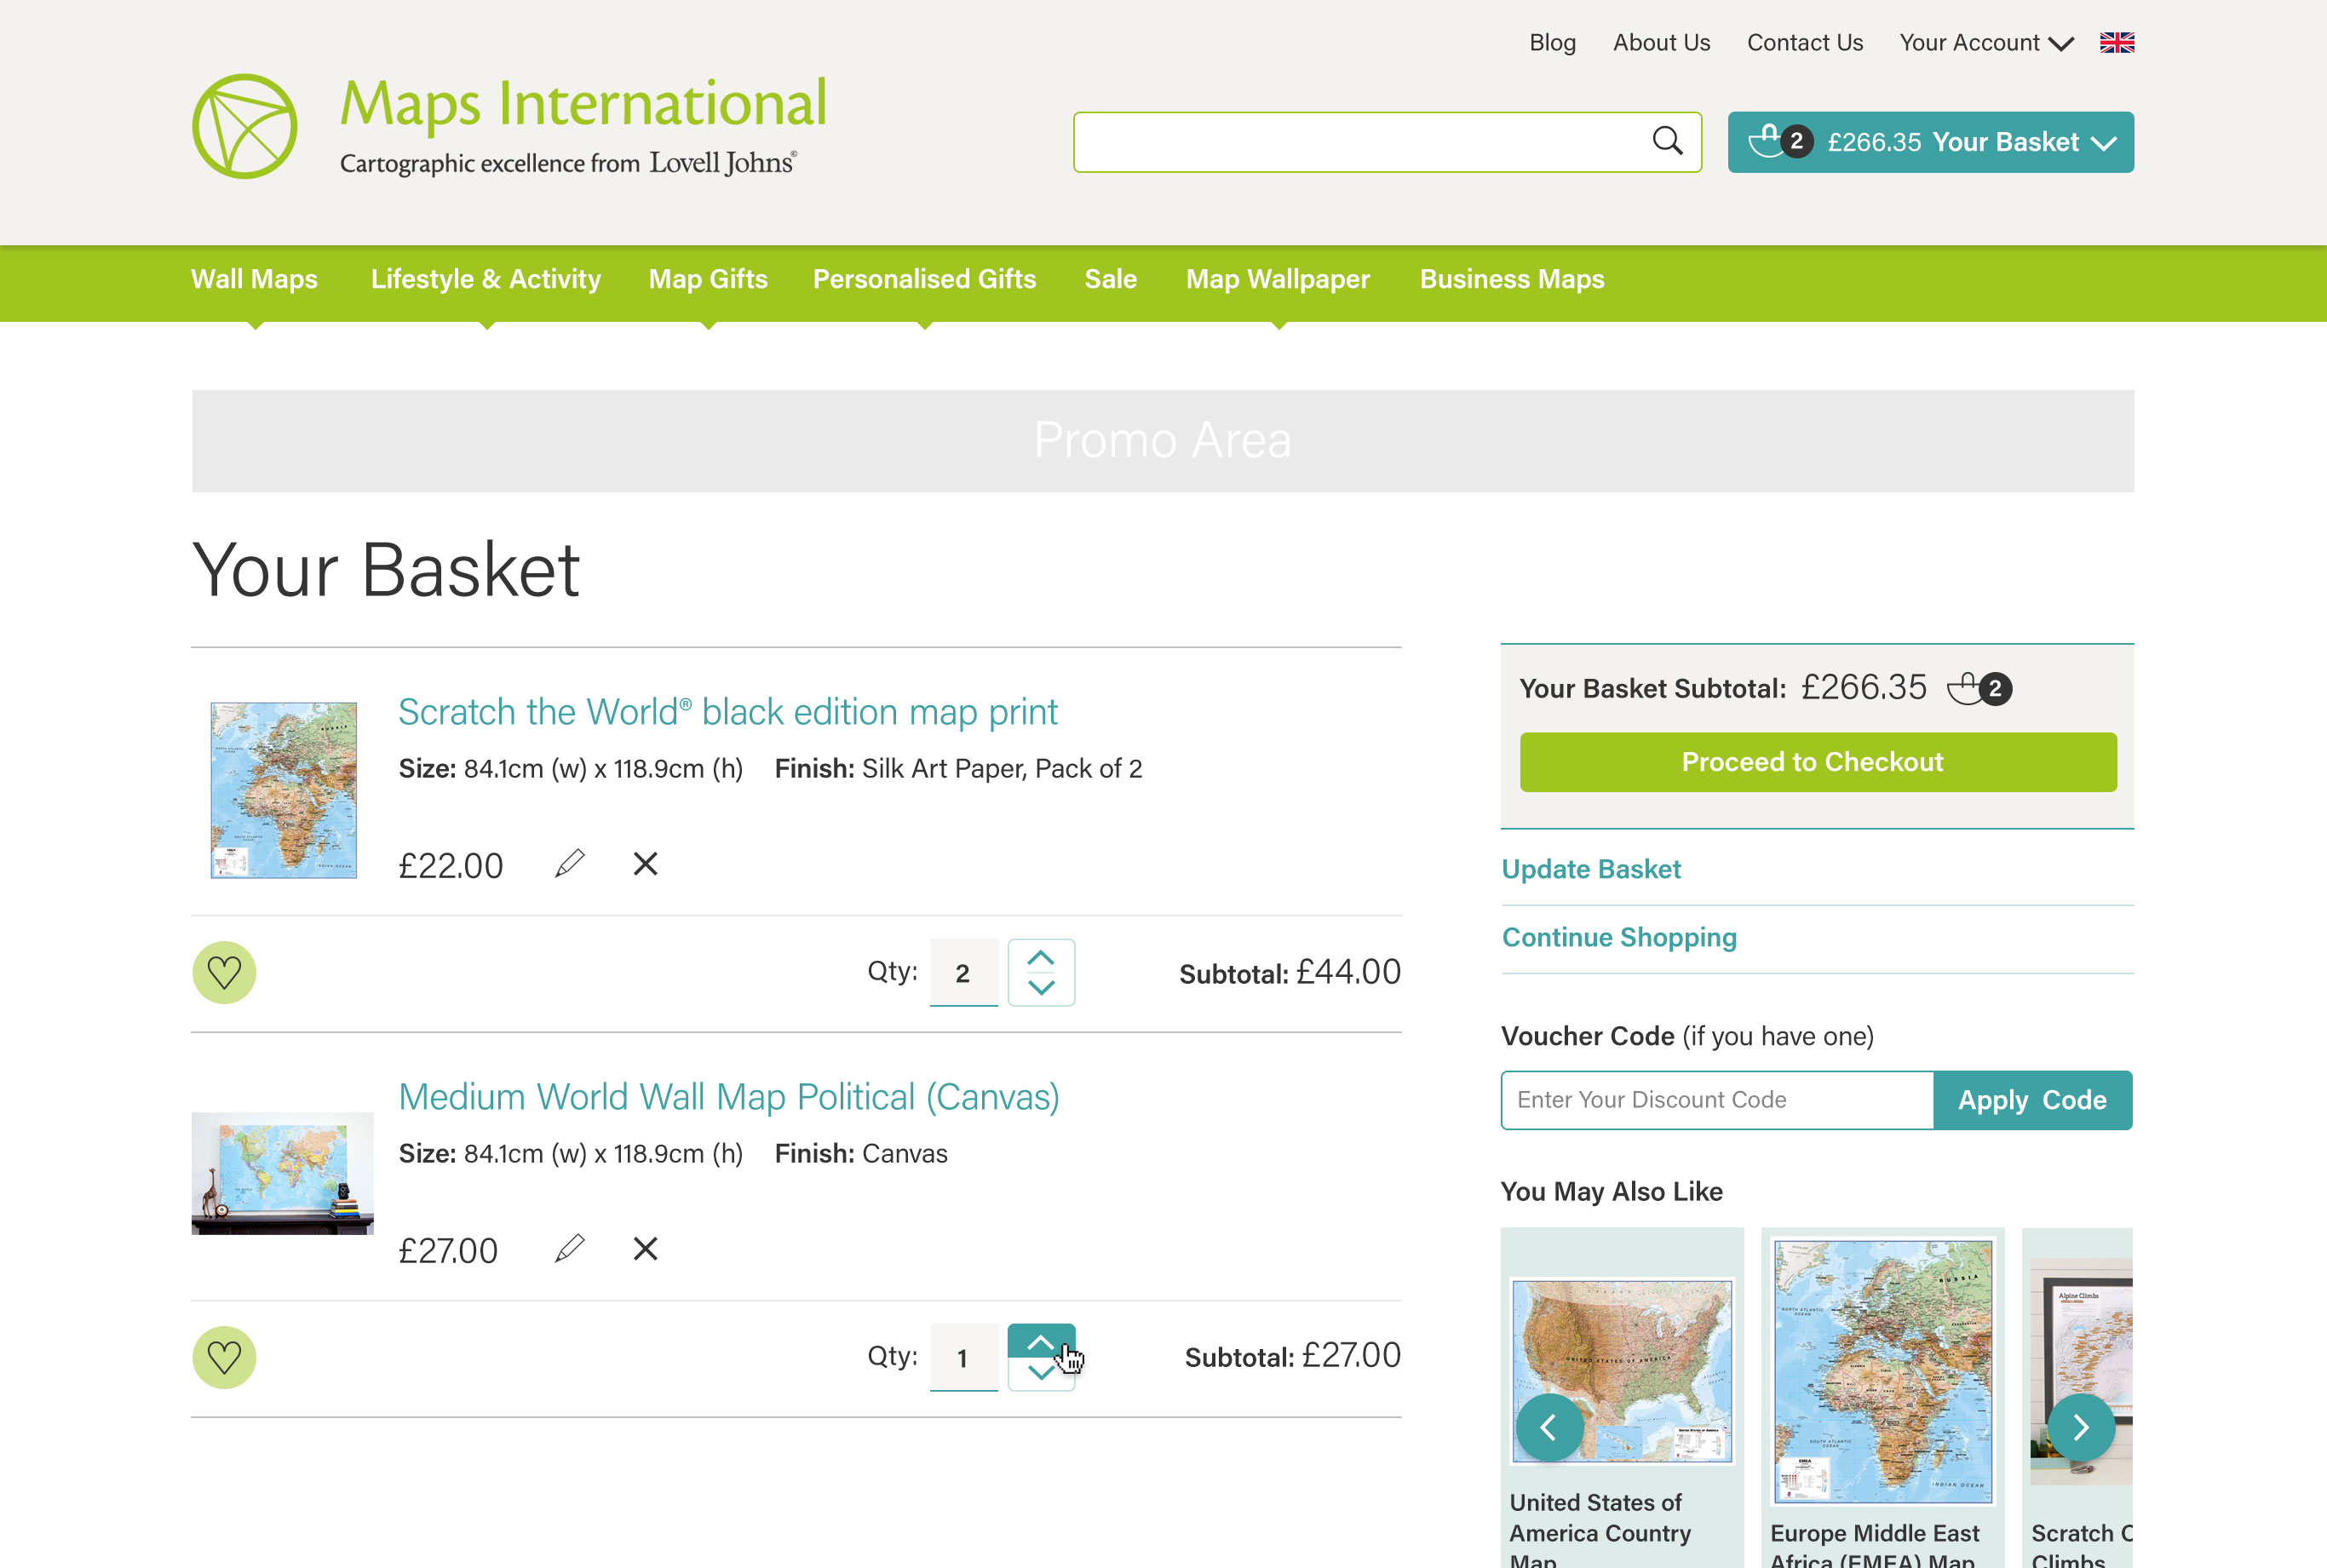 Maps International: Your Basket